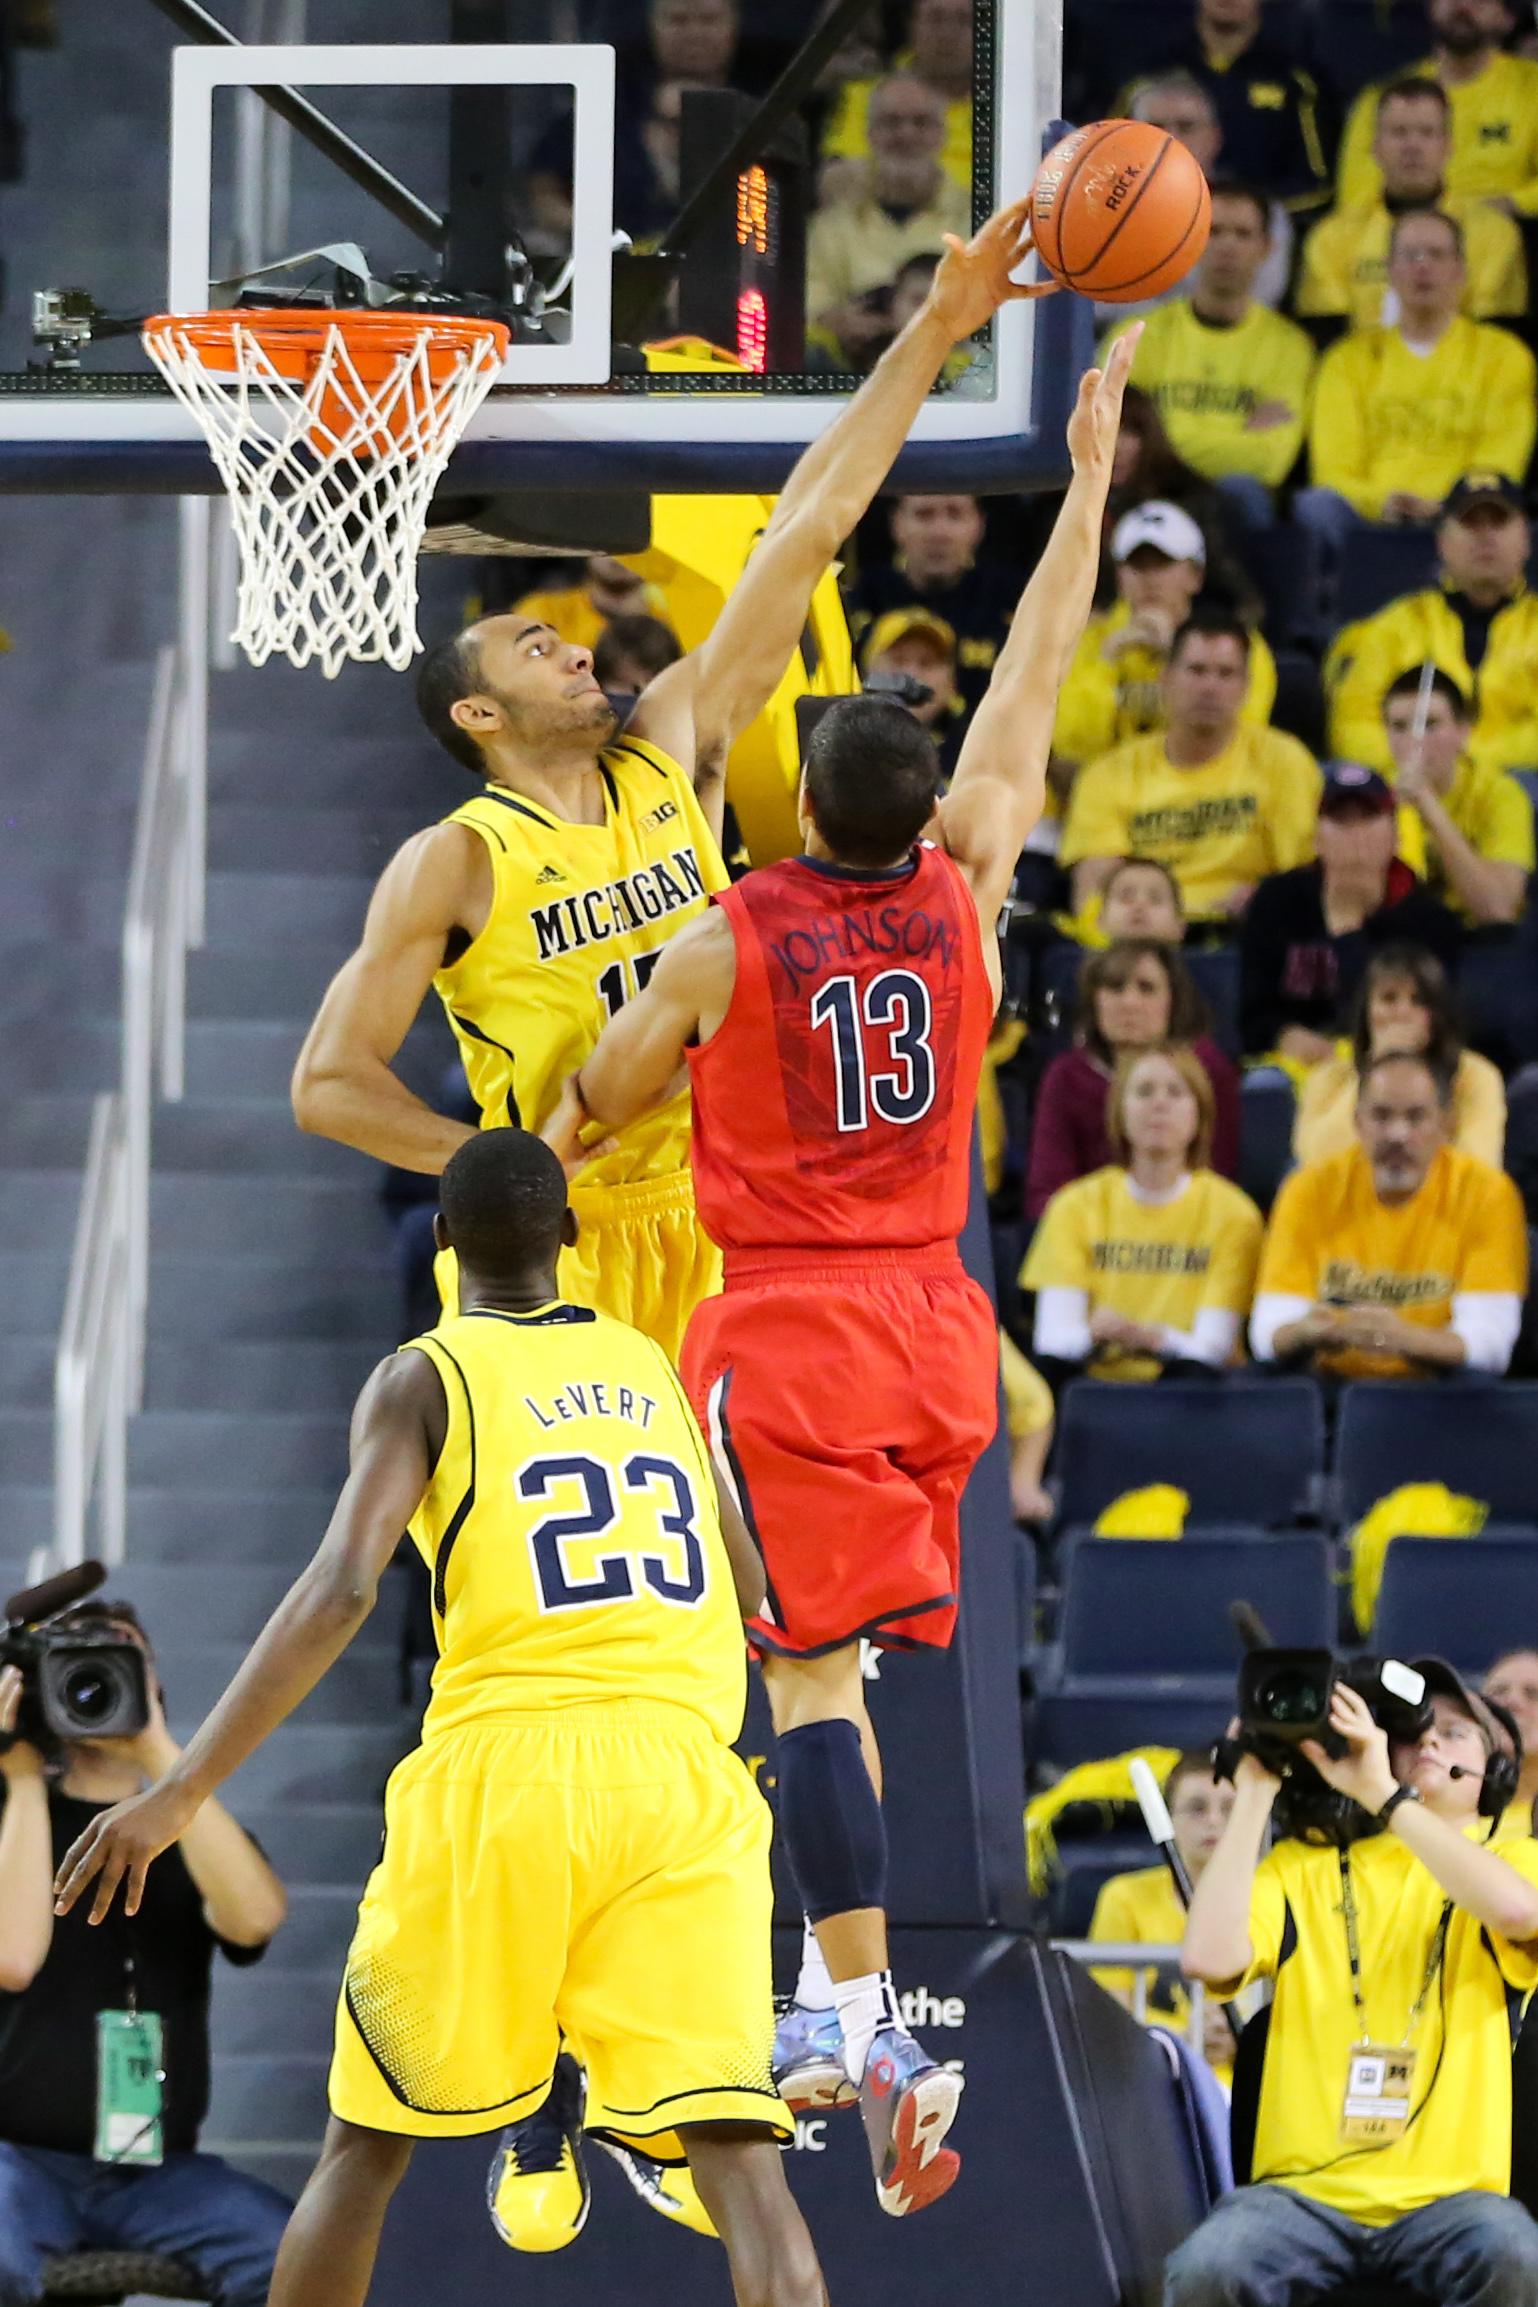 Michigan 70, Arizona 72-14